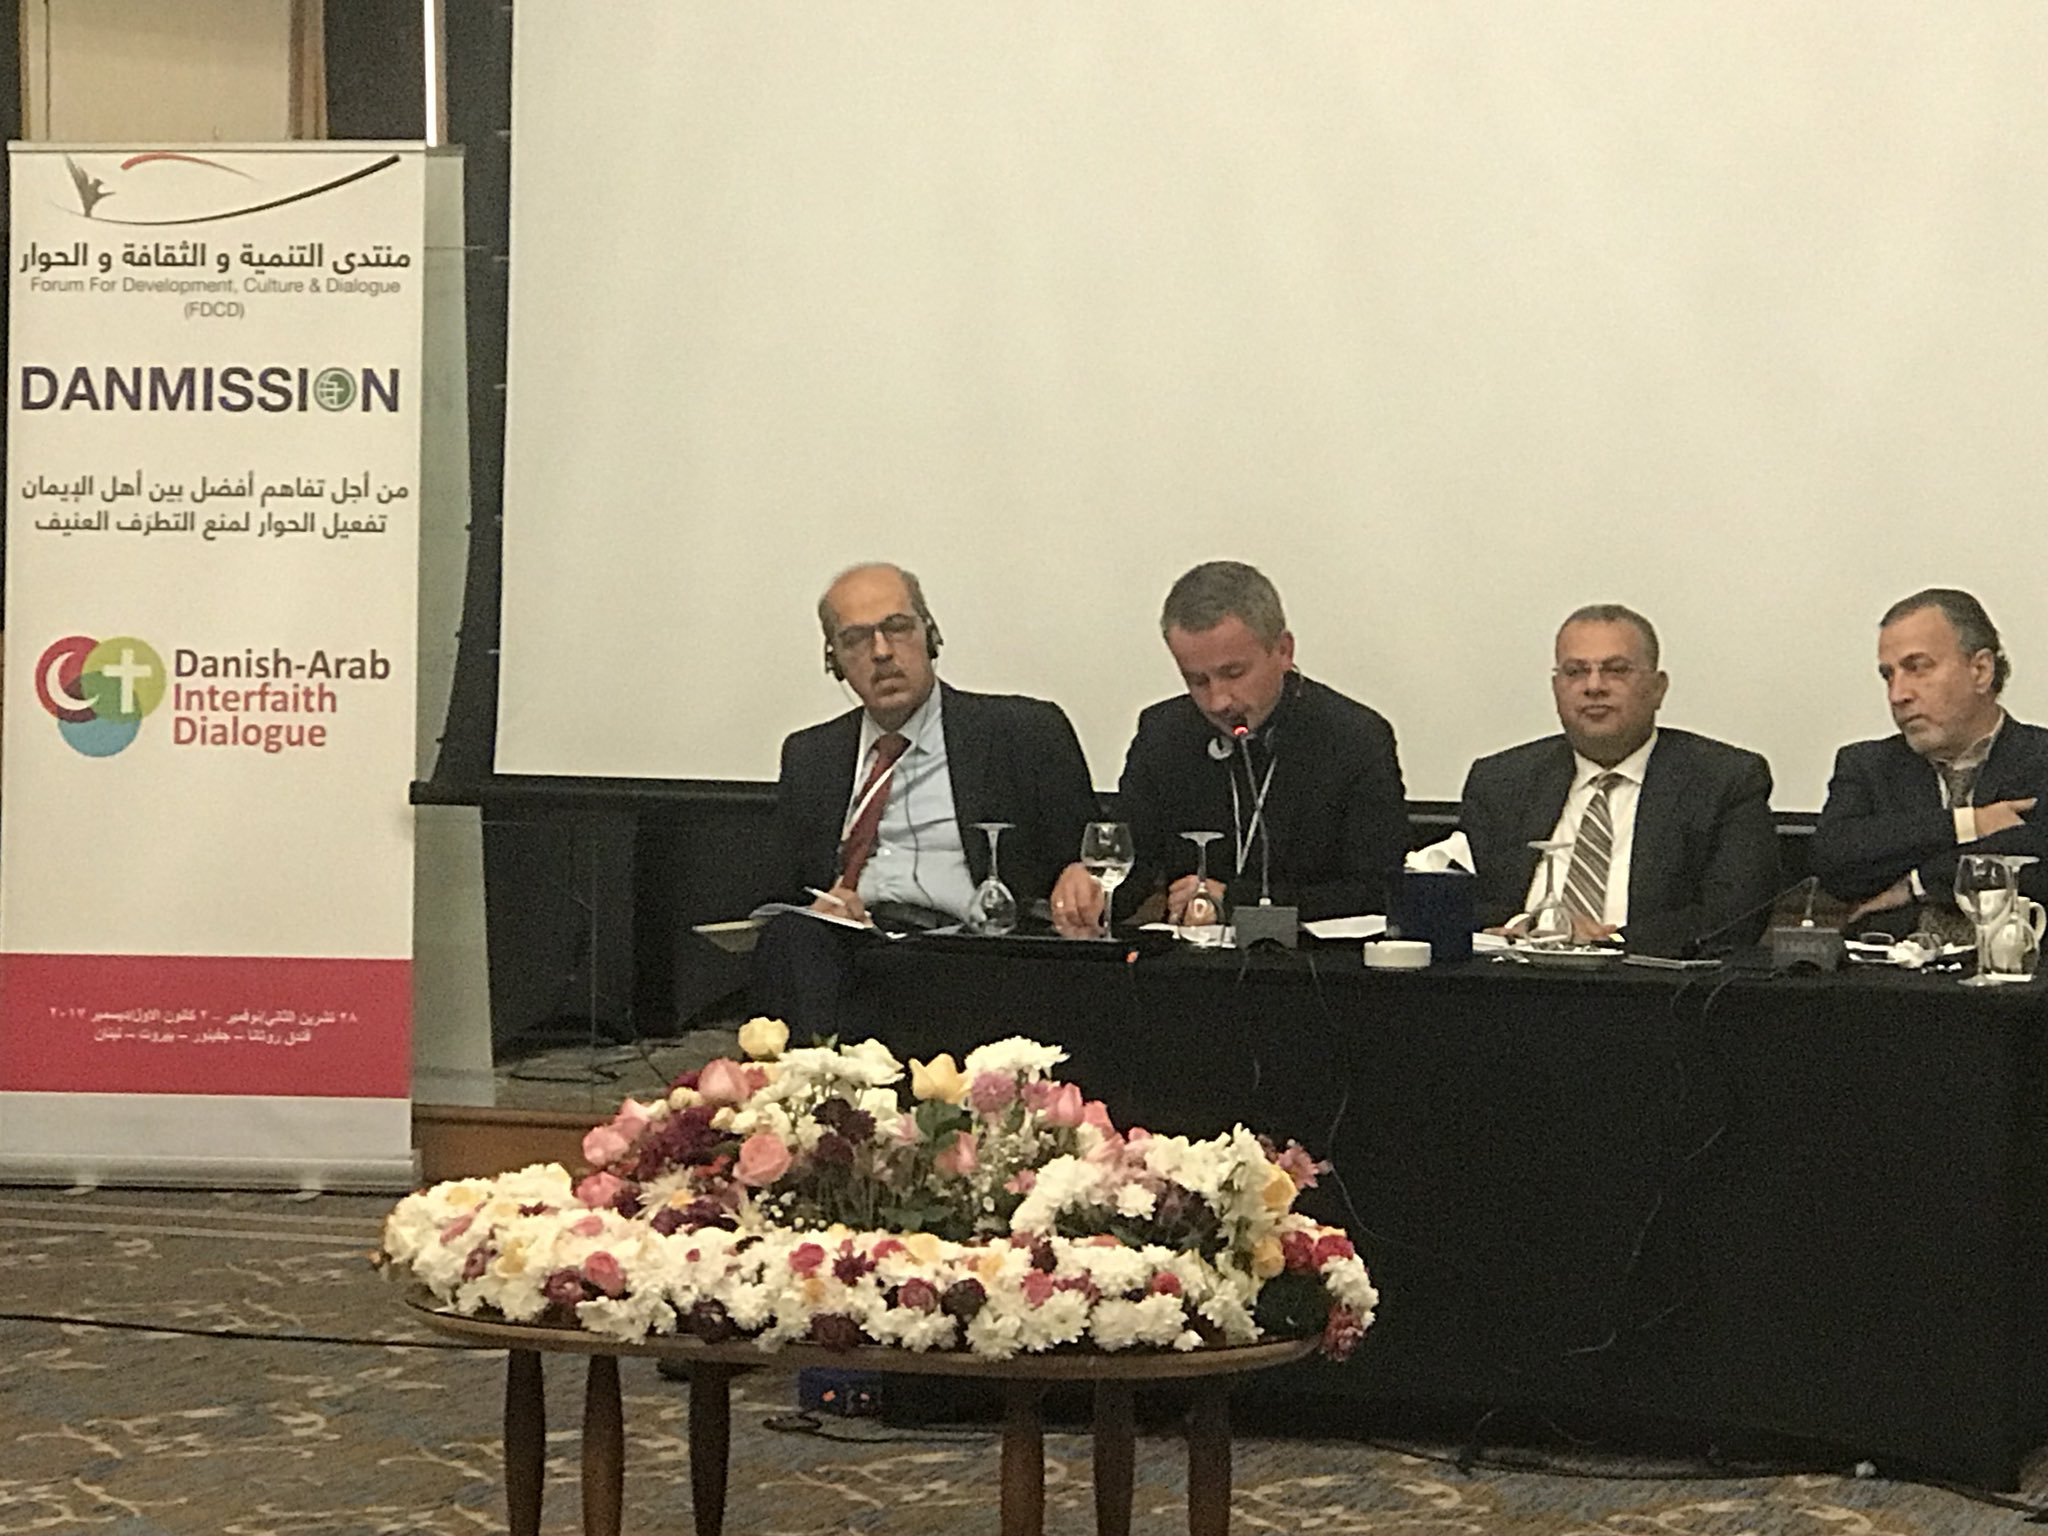 Conference: Danish Arab Interfaith Dialogue